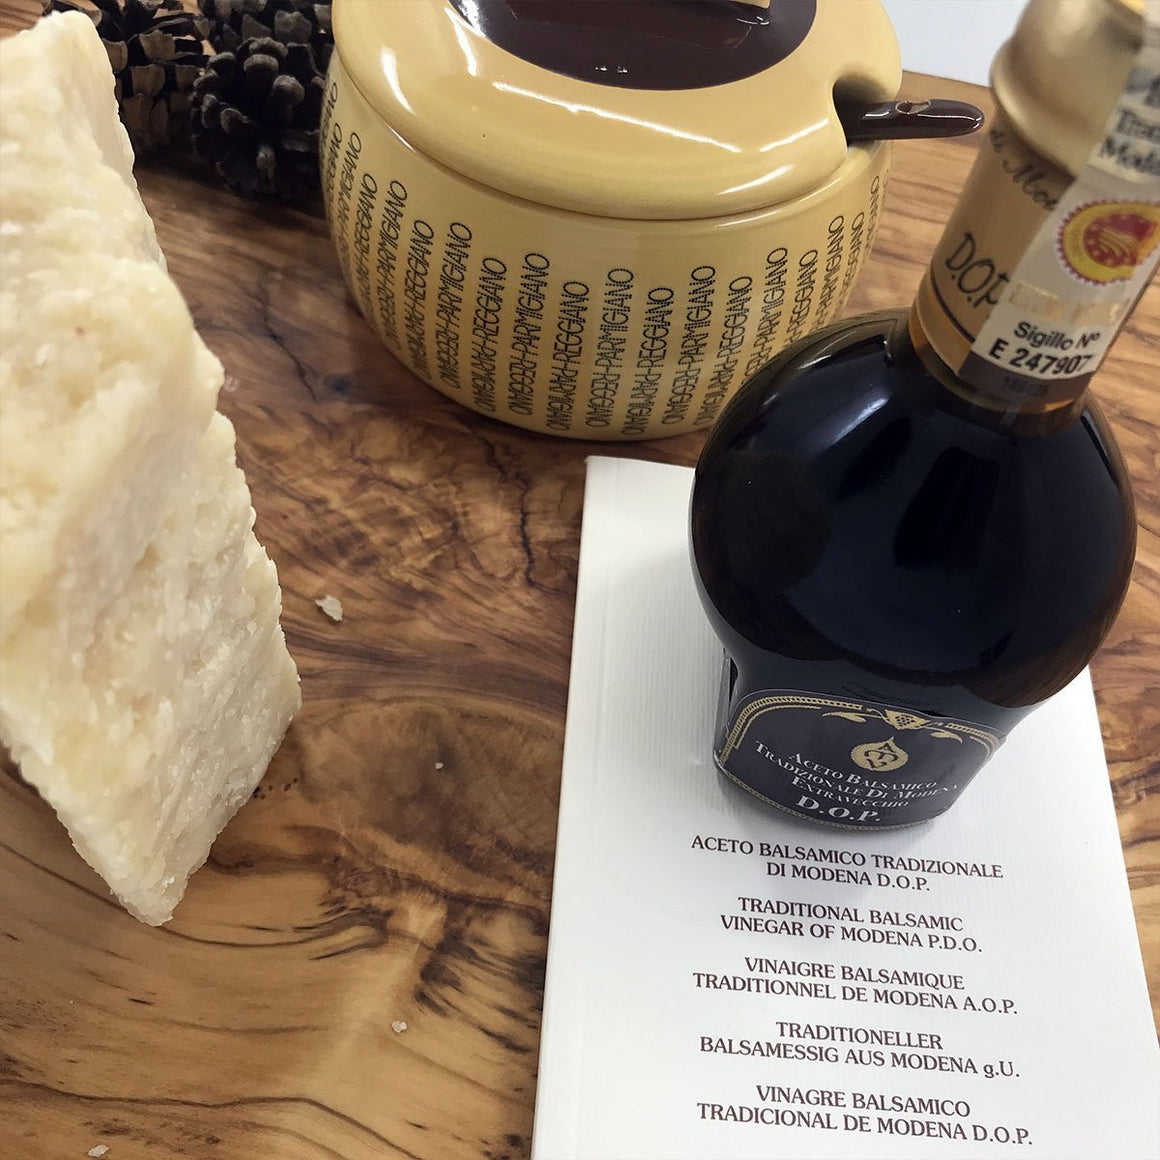 [Gift] Balsamic Vinegar 25 years, Parmigiano Reggiano and Cheese Bowl - PepeGusto